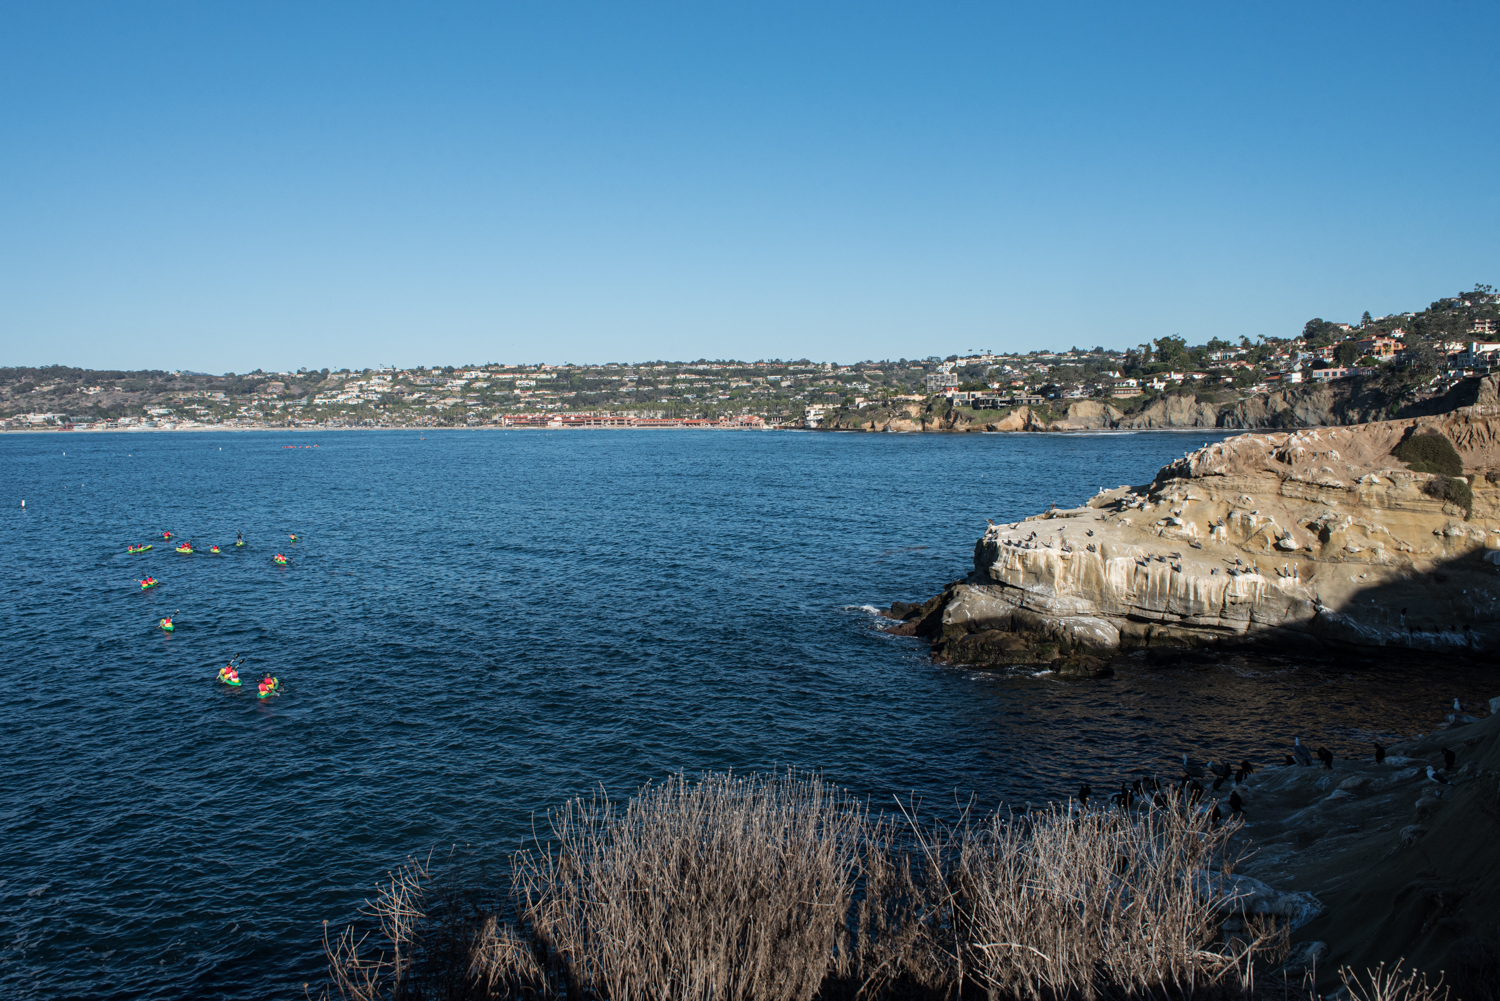 La Jolla Cove is a popular spot for swimming, snorkeling, kayaking and observing the sea lions and seals.